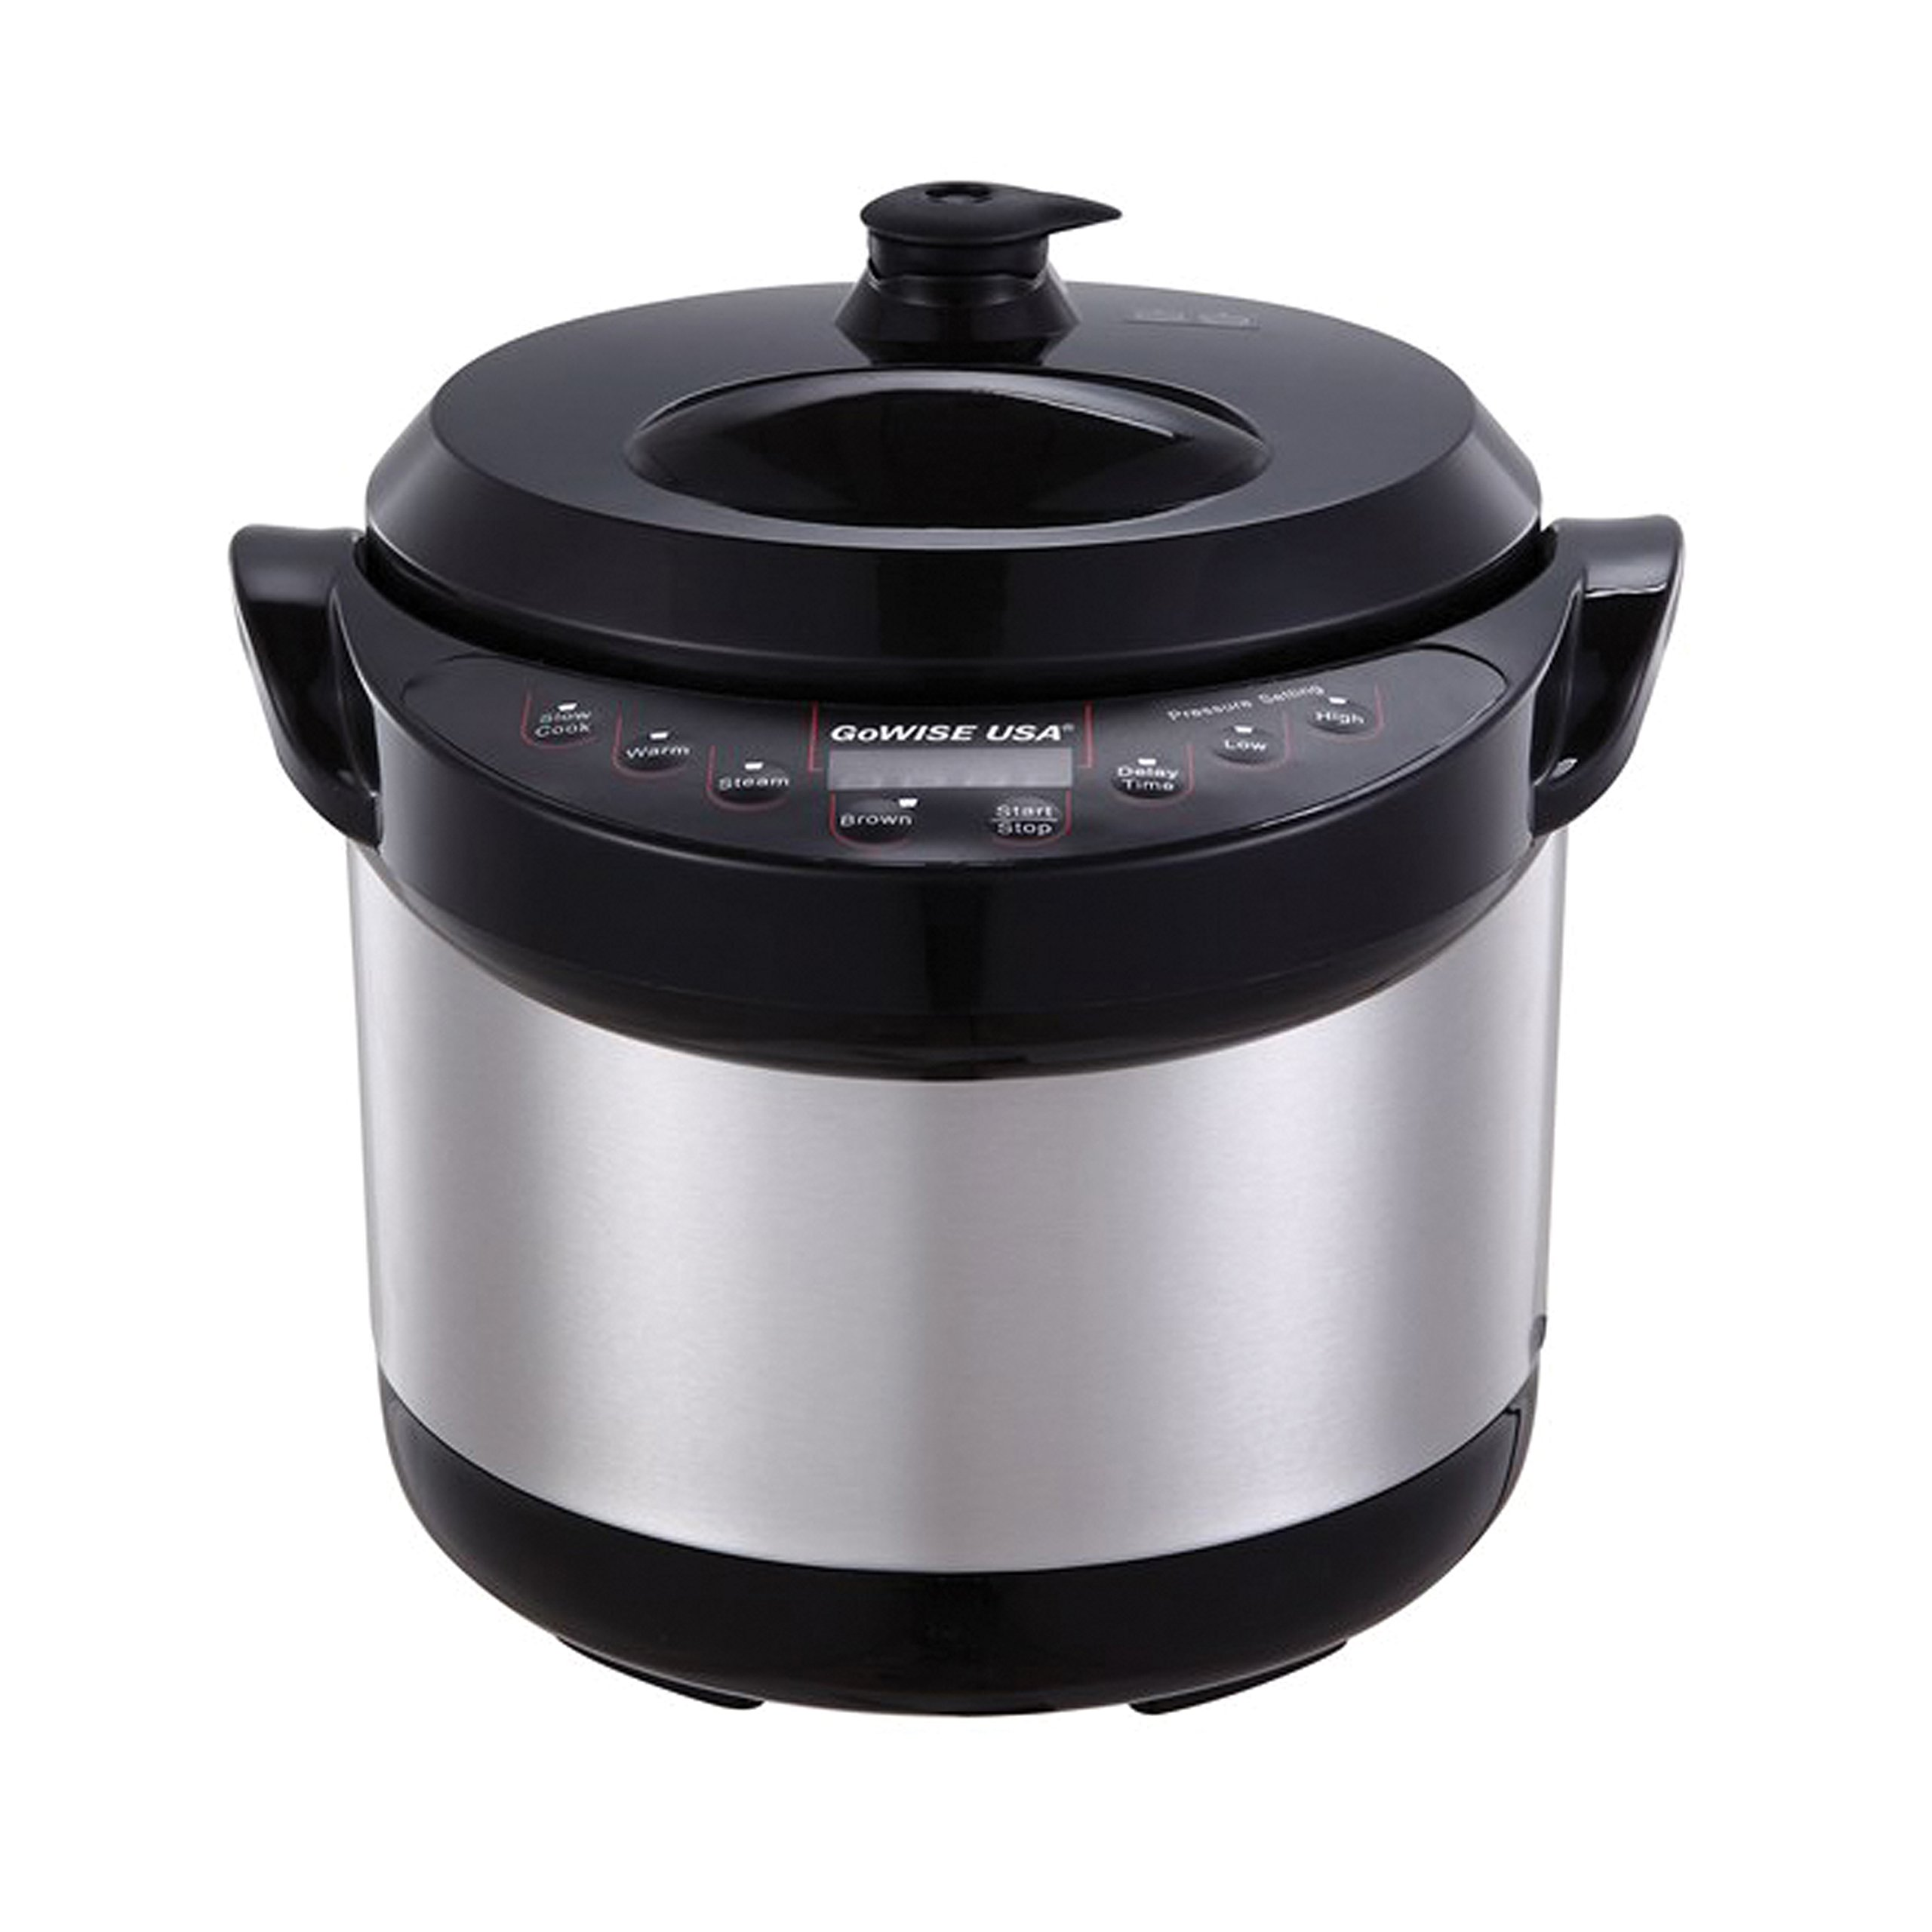 Electric Pressure Cooker With Stainless Steel Insert Photos